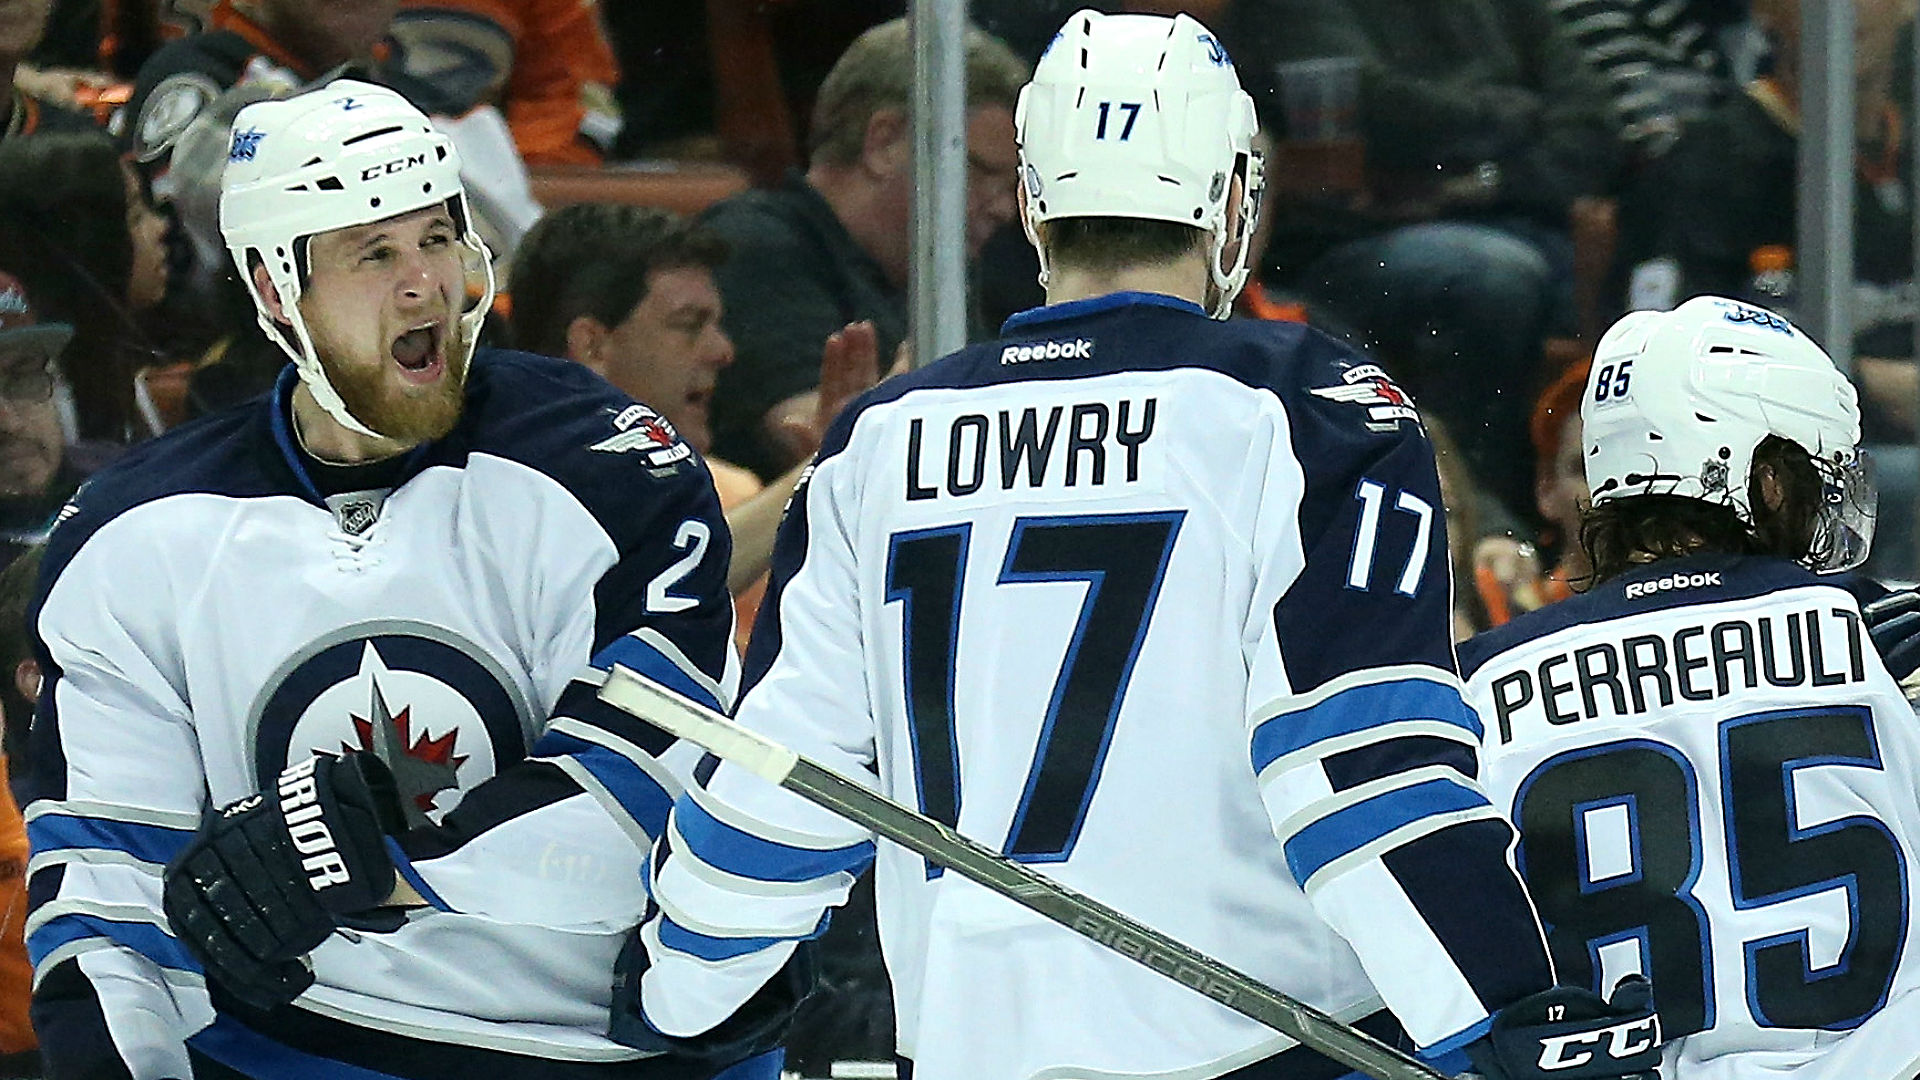 NHL playoff odds, betting lines and totals – Postseason hockey returns to Winnipeg